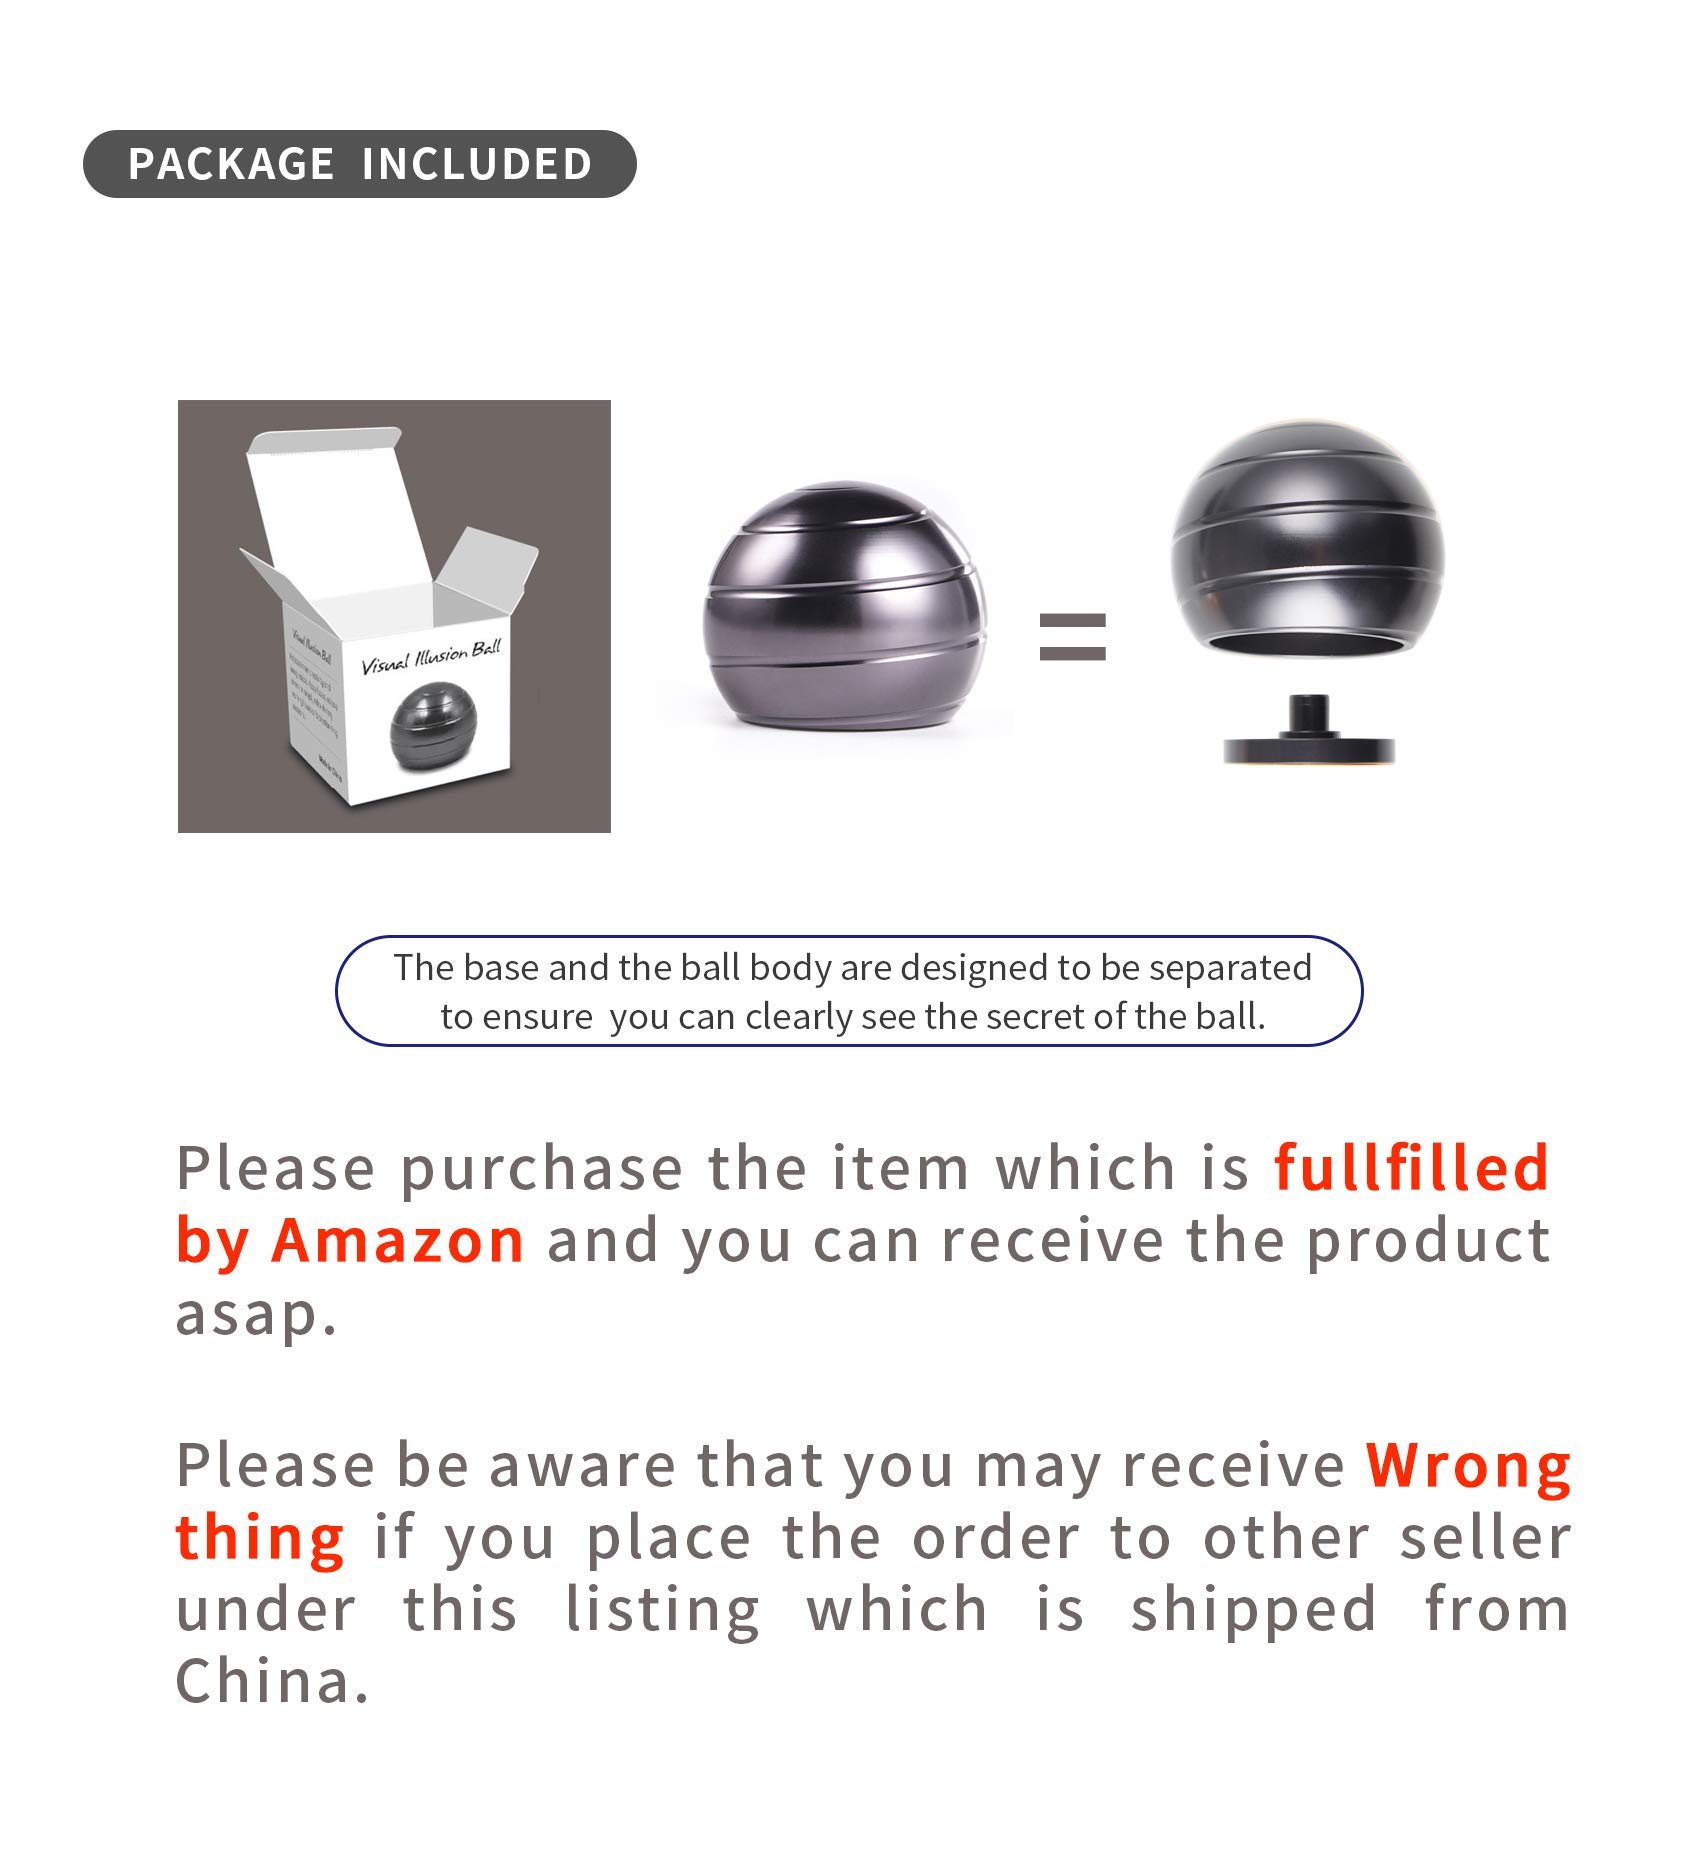 DESDK Kinetic Desk Toy Stress Relief Toys Office Executive Toys Metal Fidget Spinner Ball with Optical Illusion for Adults & Kids, Anti Anxiety ADHD Relieve Stress Inspire Inner Creativity(Gray) by DESDK (Image #6)